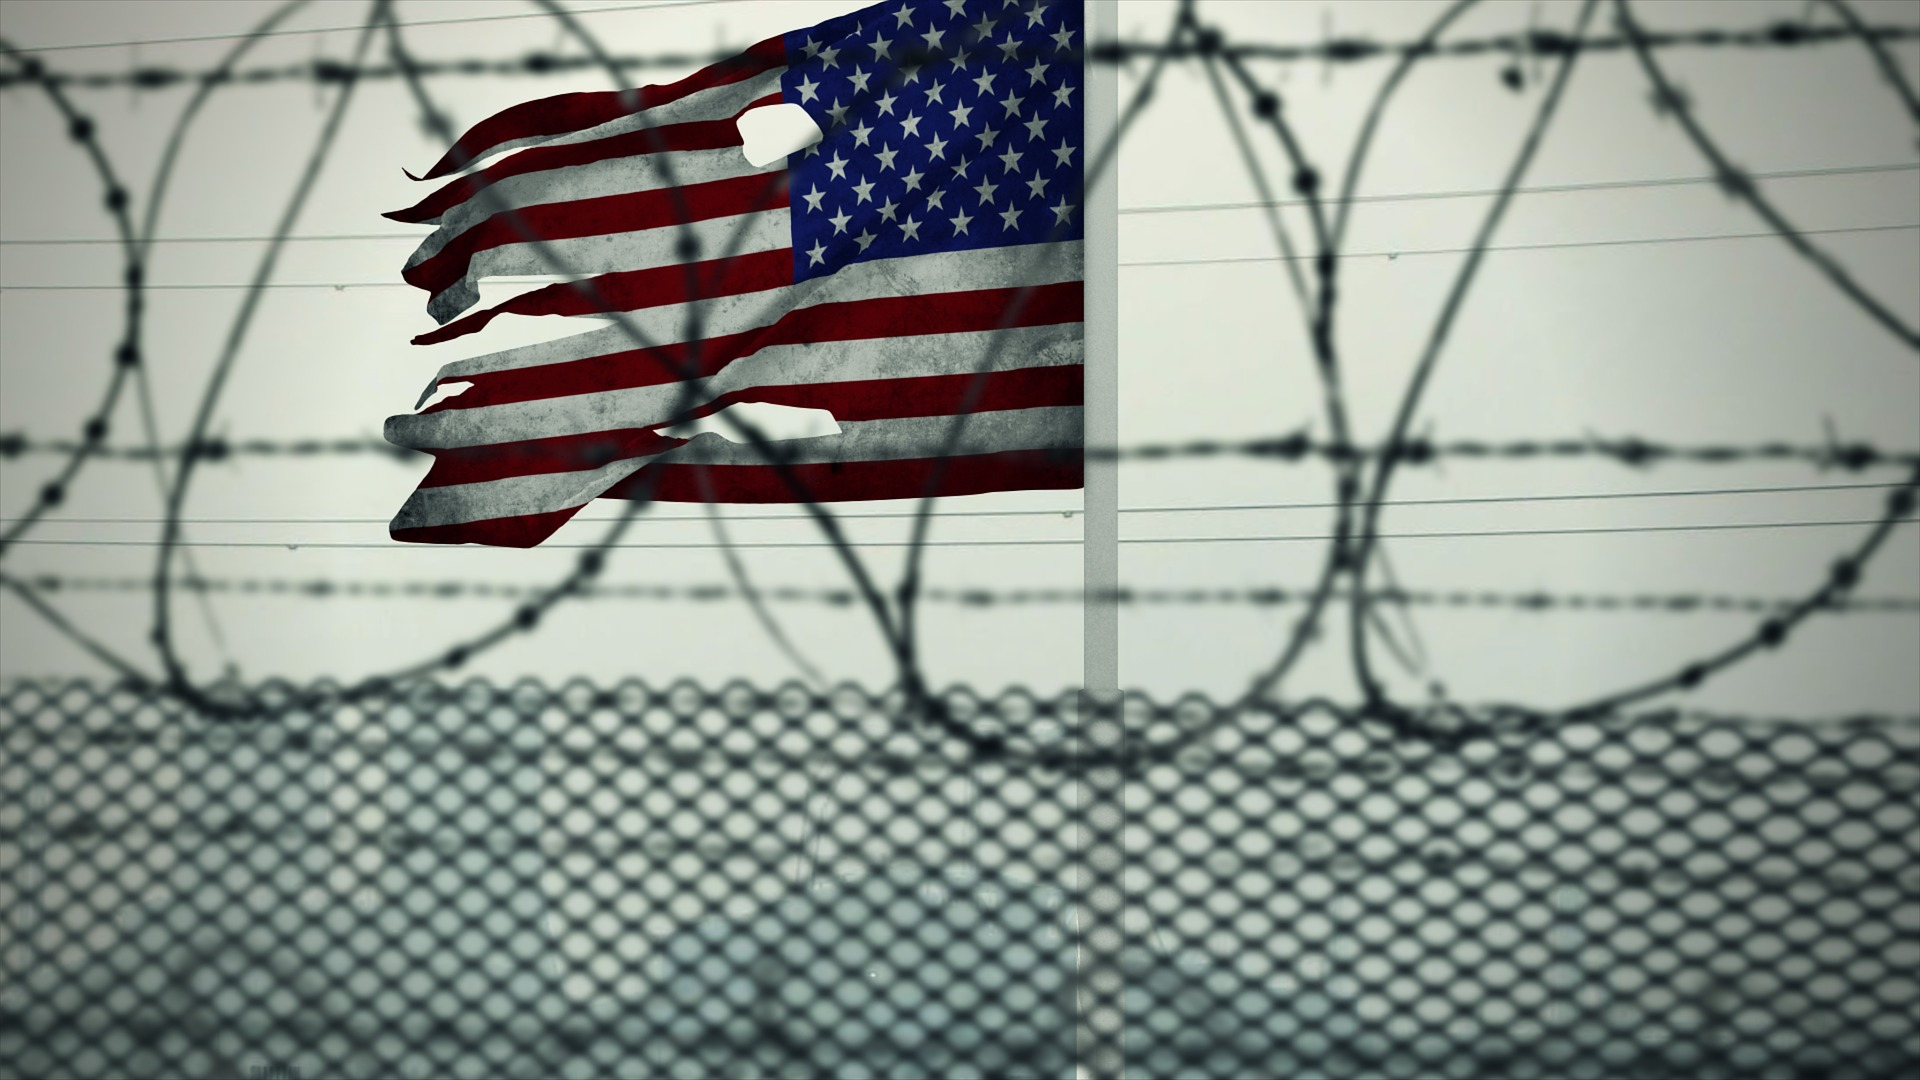 American flag behind barbwire